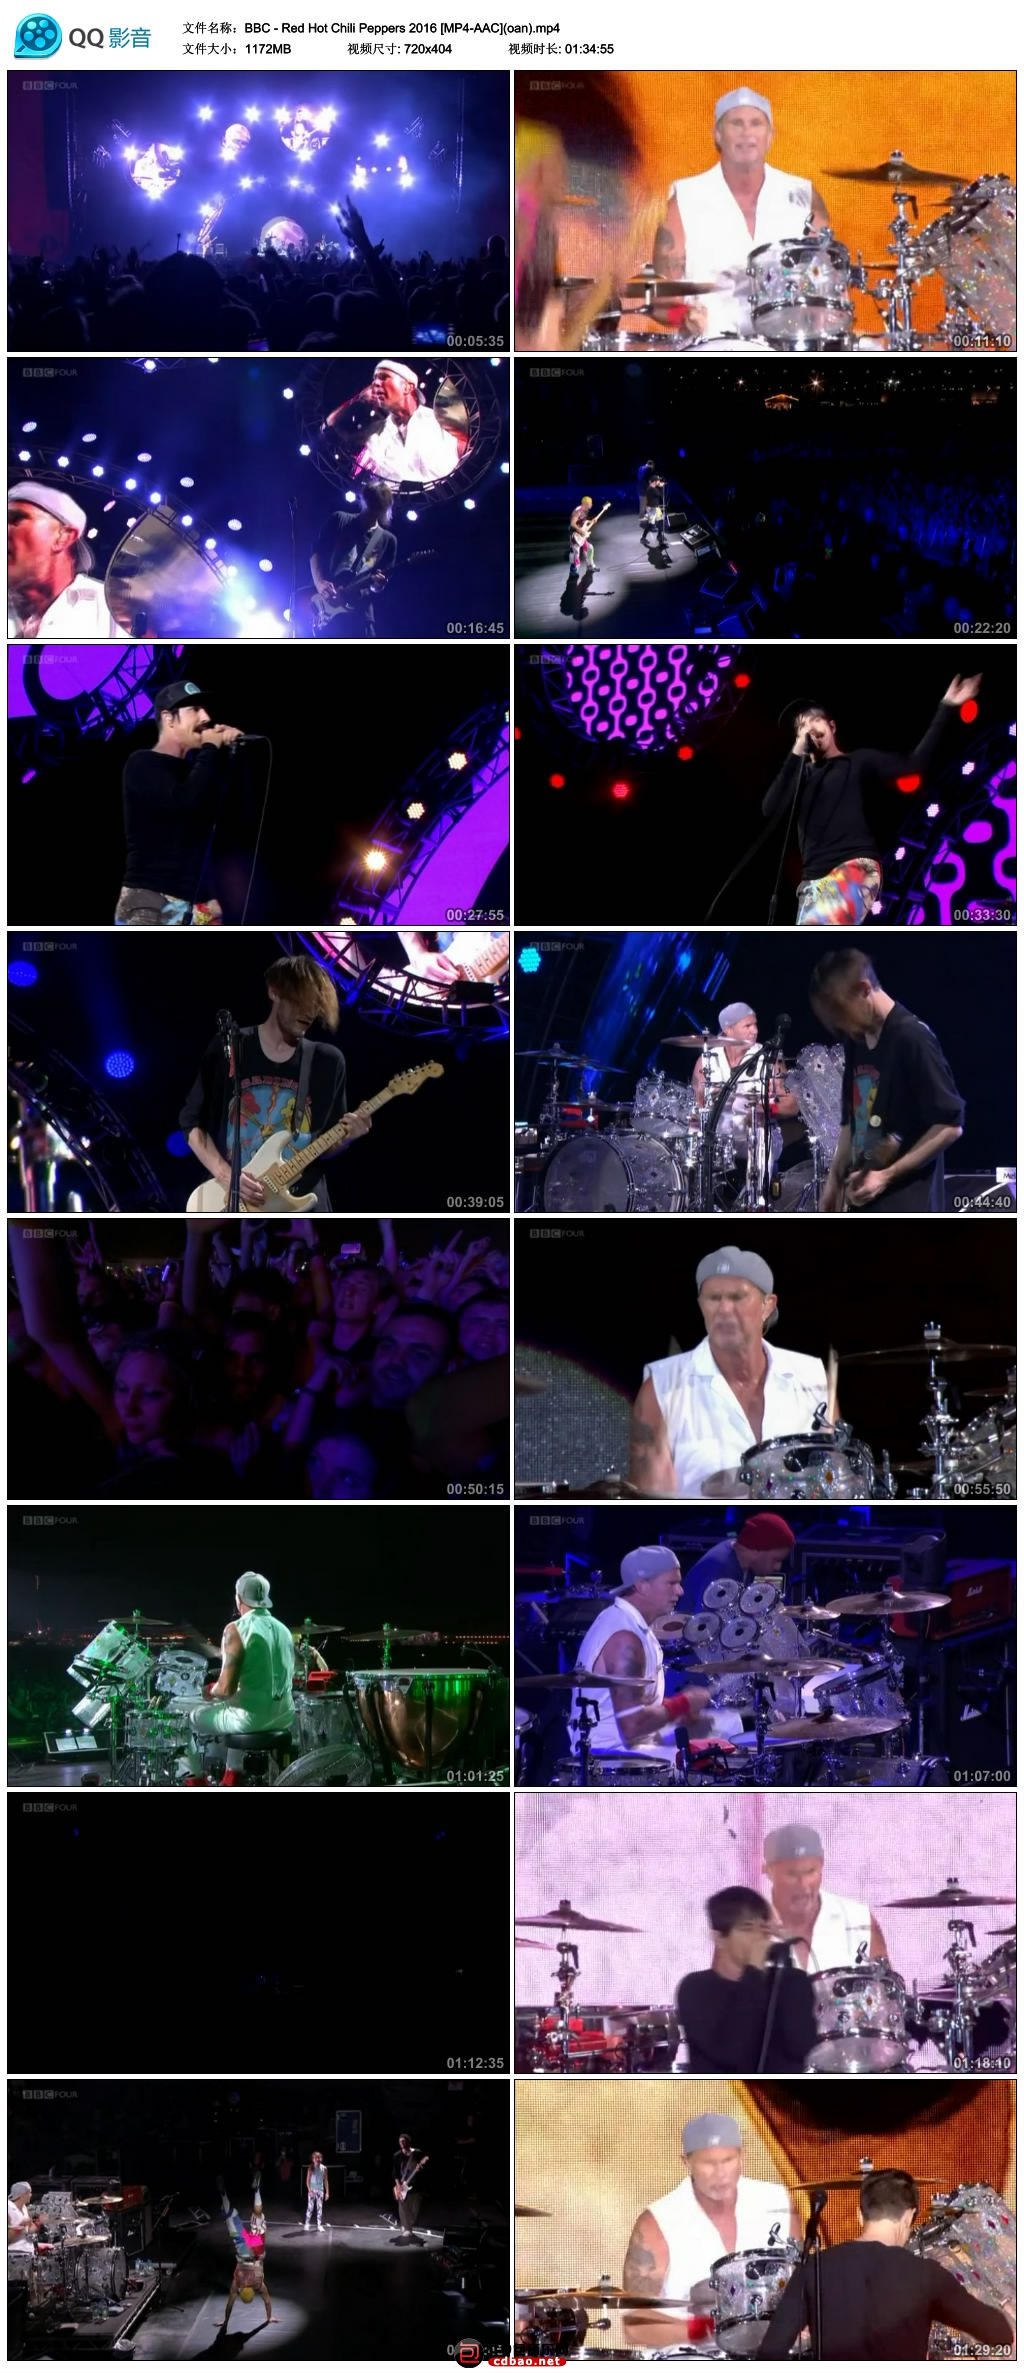 BBC - Red Hot Chili Peppers 2016 [MP4-AAC](oan).mp4_thumbs_2016.09.09.18_01_48.jpg